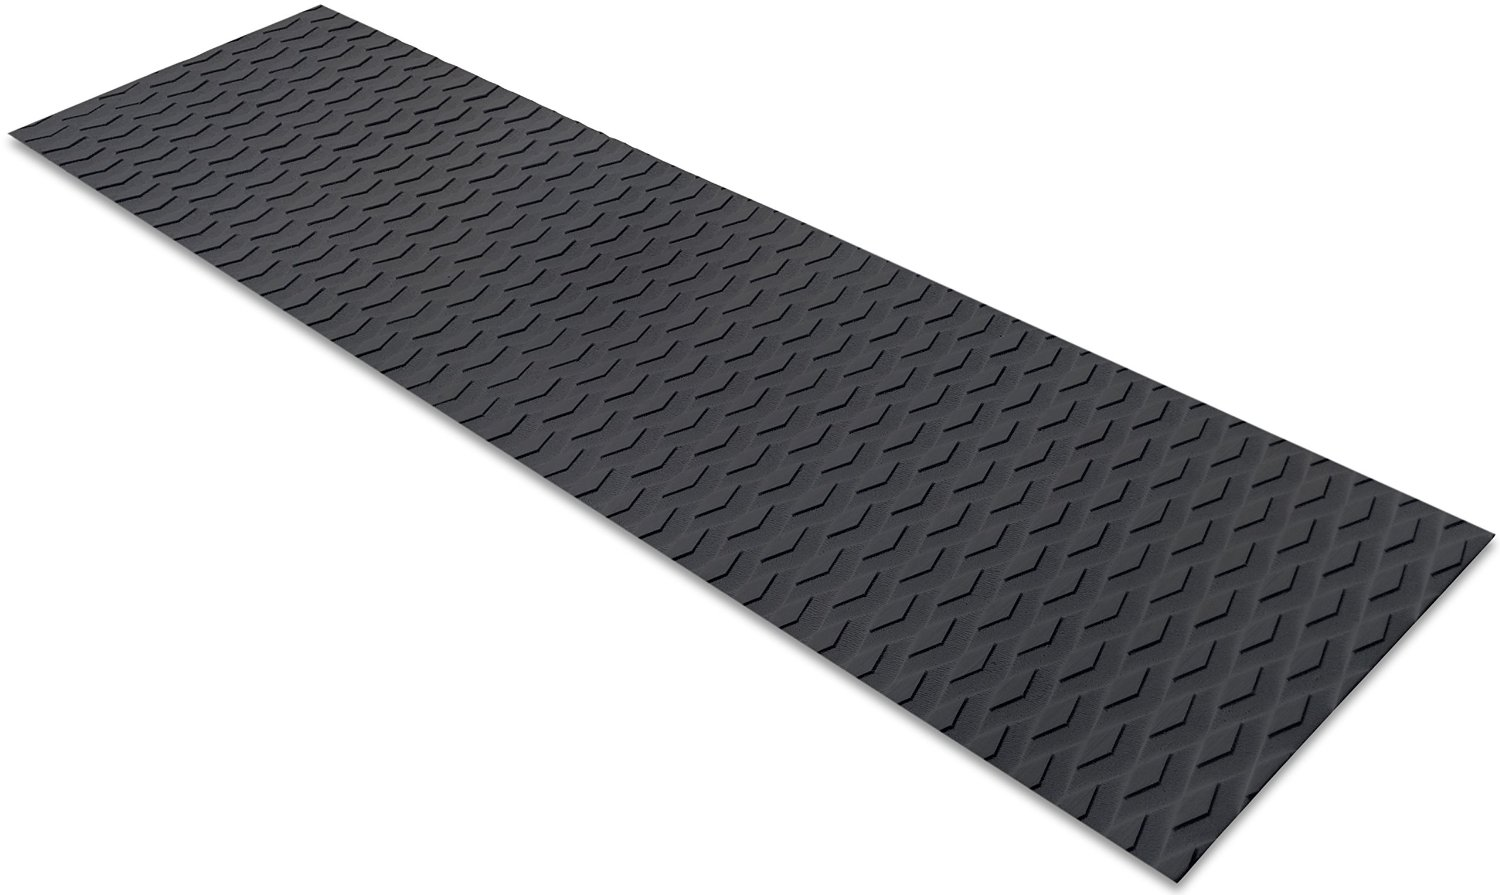 Surf Traction Pad Eva Deck Pad Eva Traction Pad Moreva